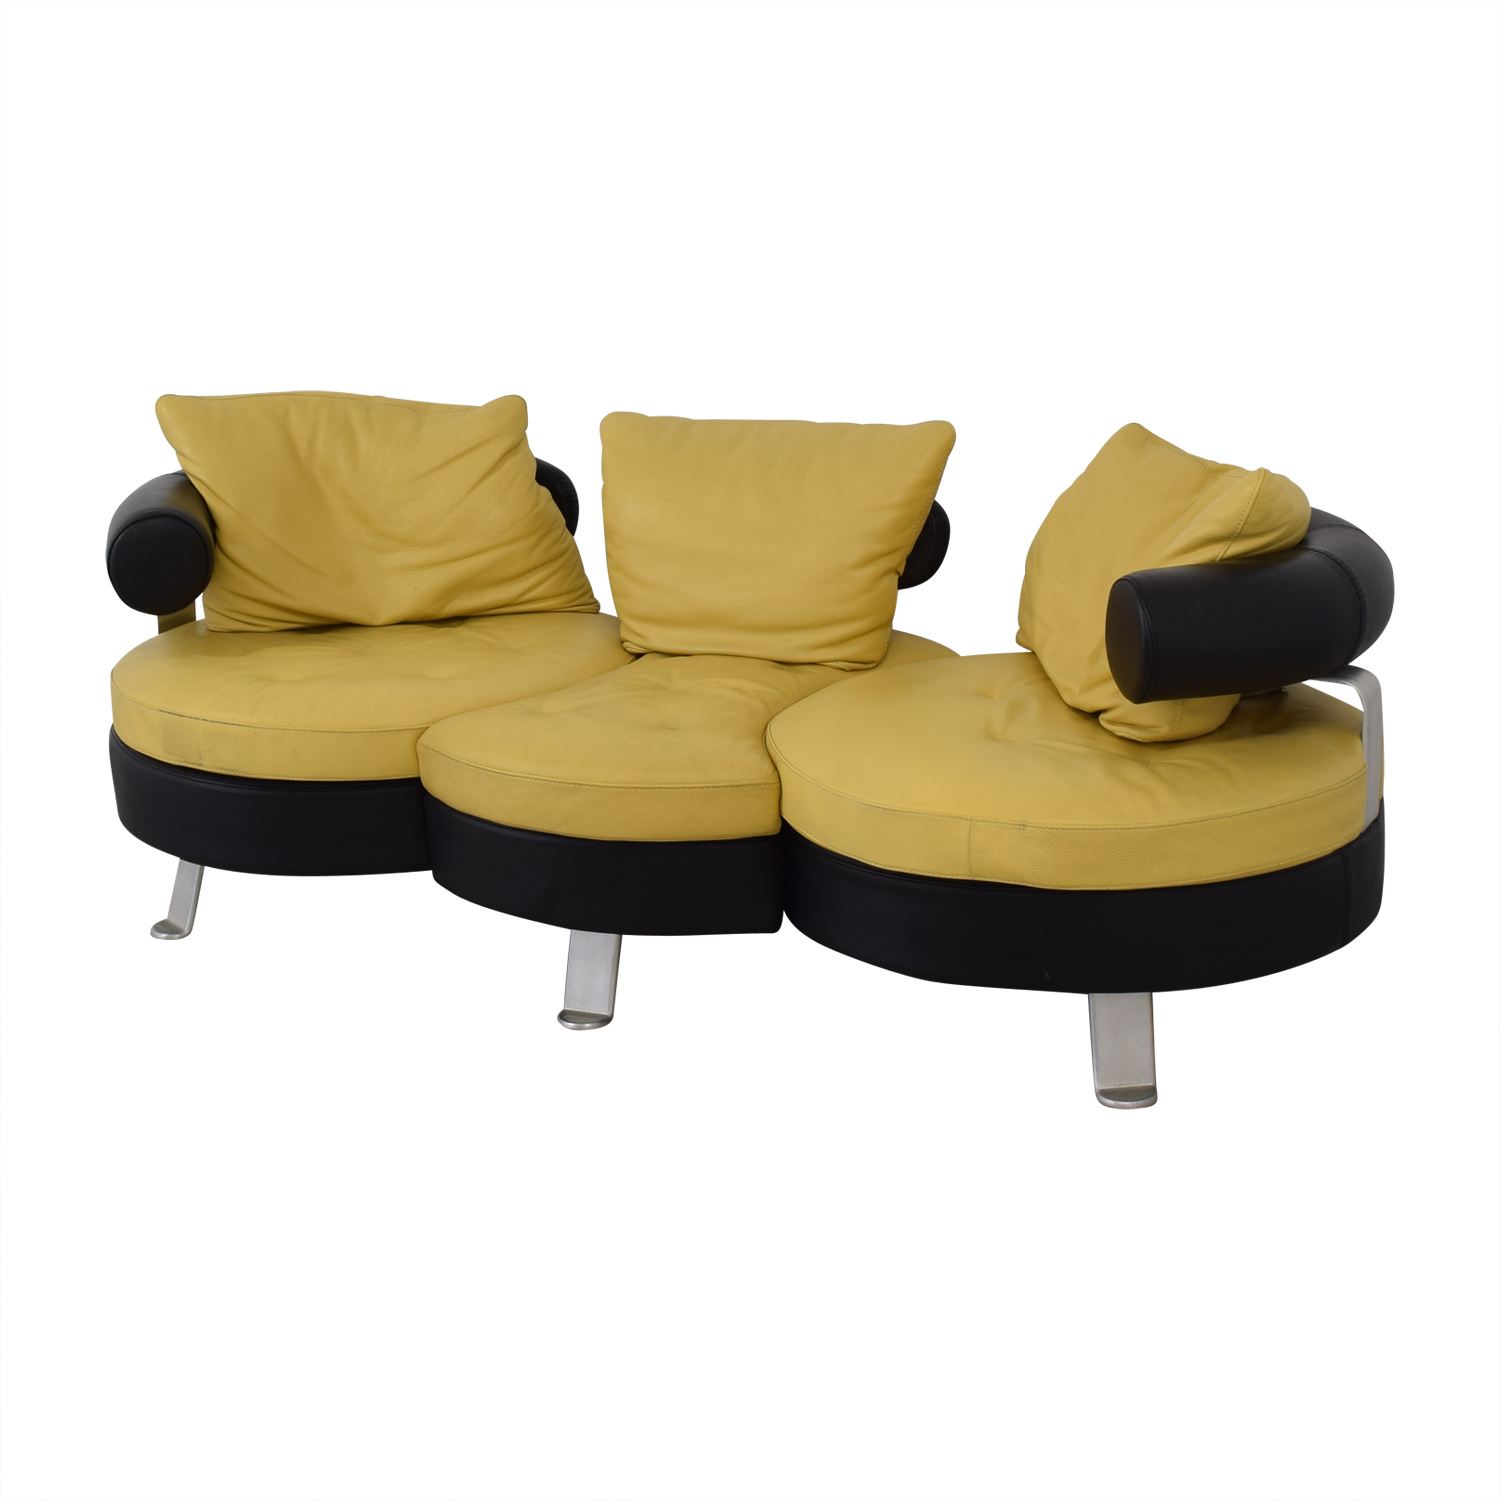 Formenti Formenti Formenti Divani Contemporary Original Swivel Sofa used